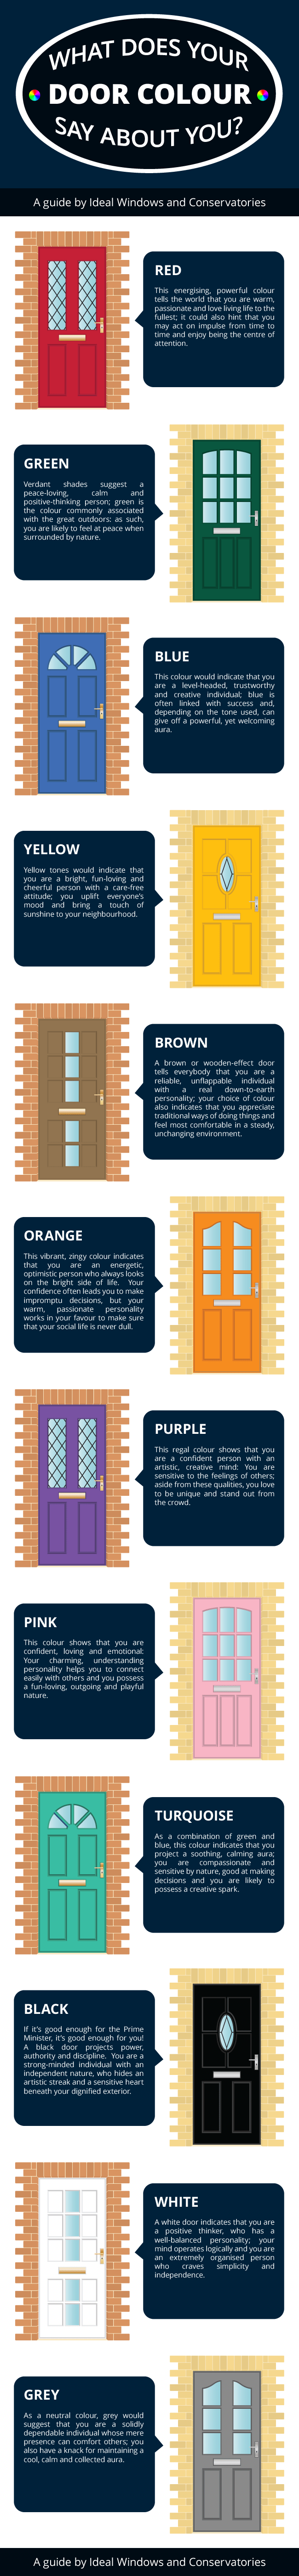 What Does Your Door Color Say About You